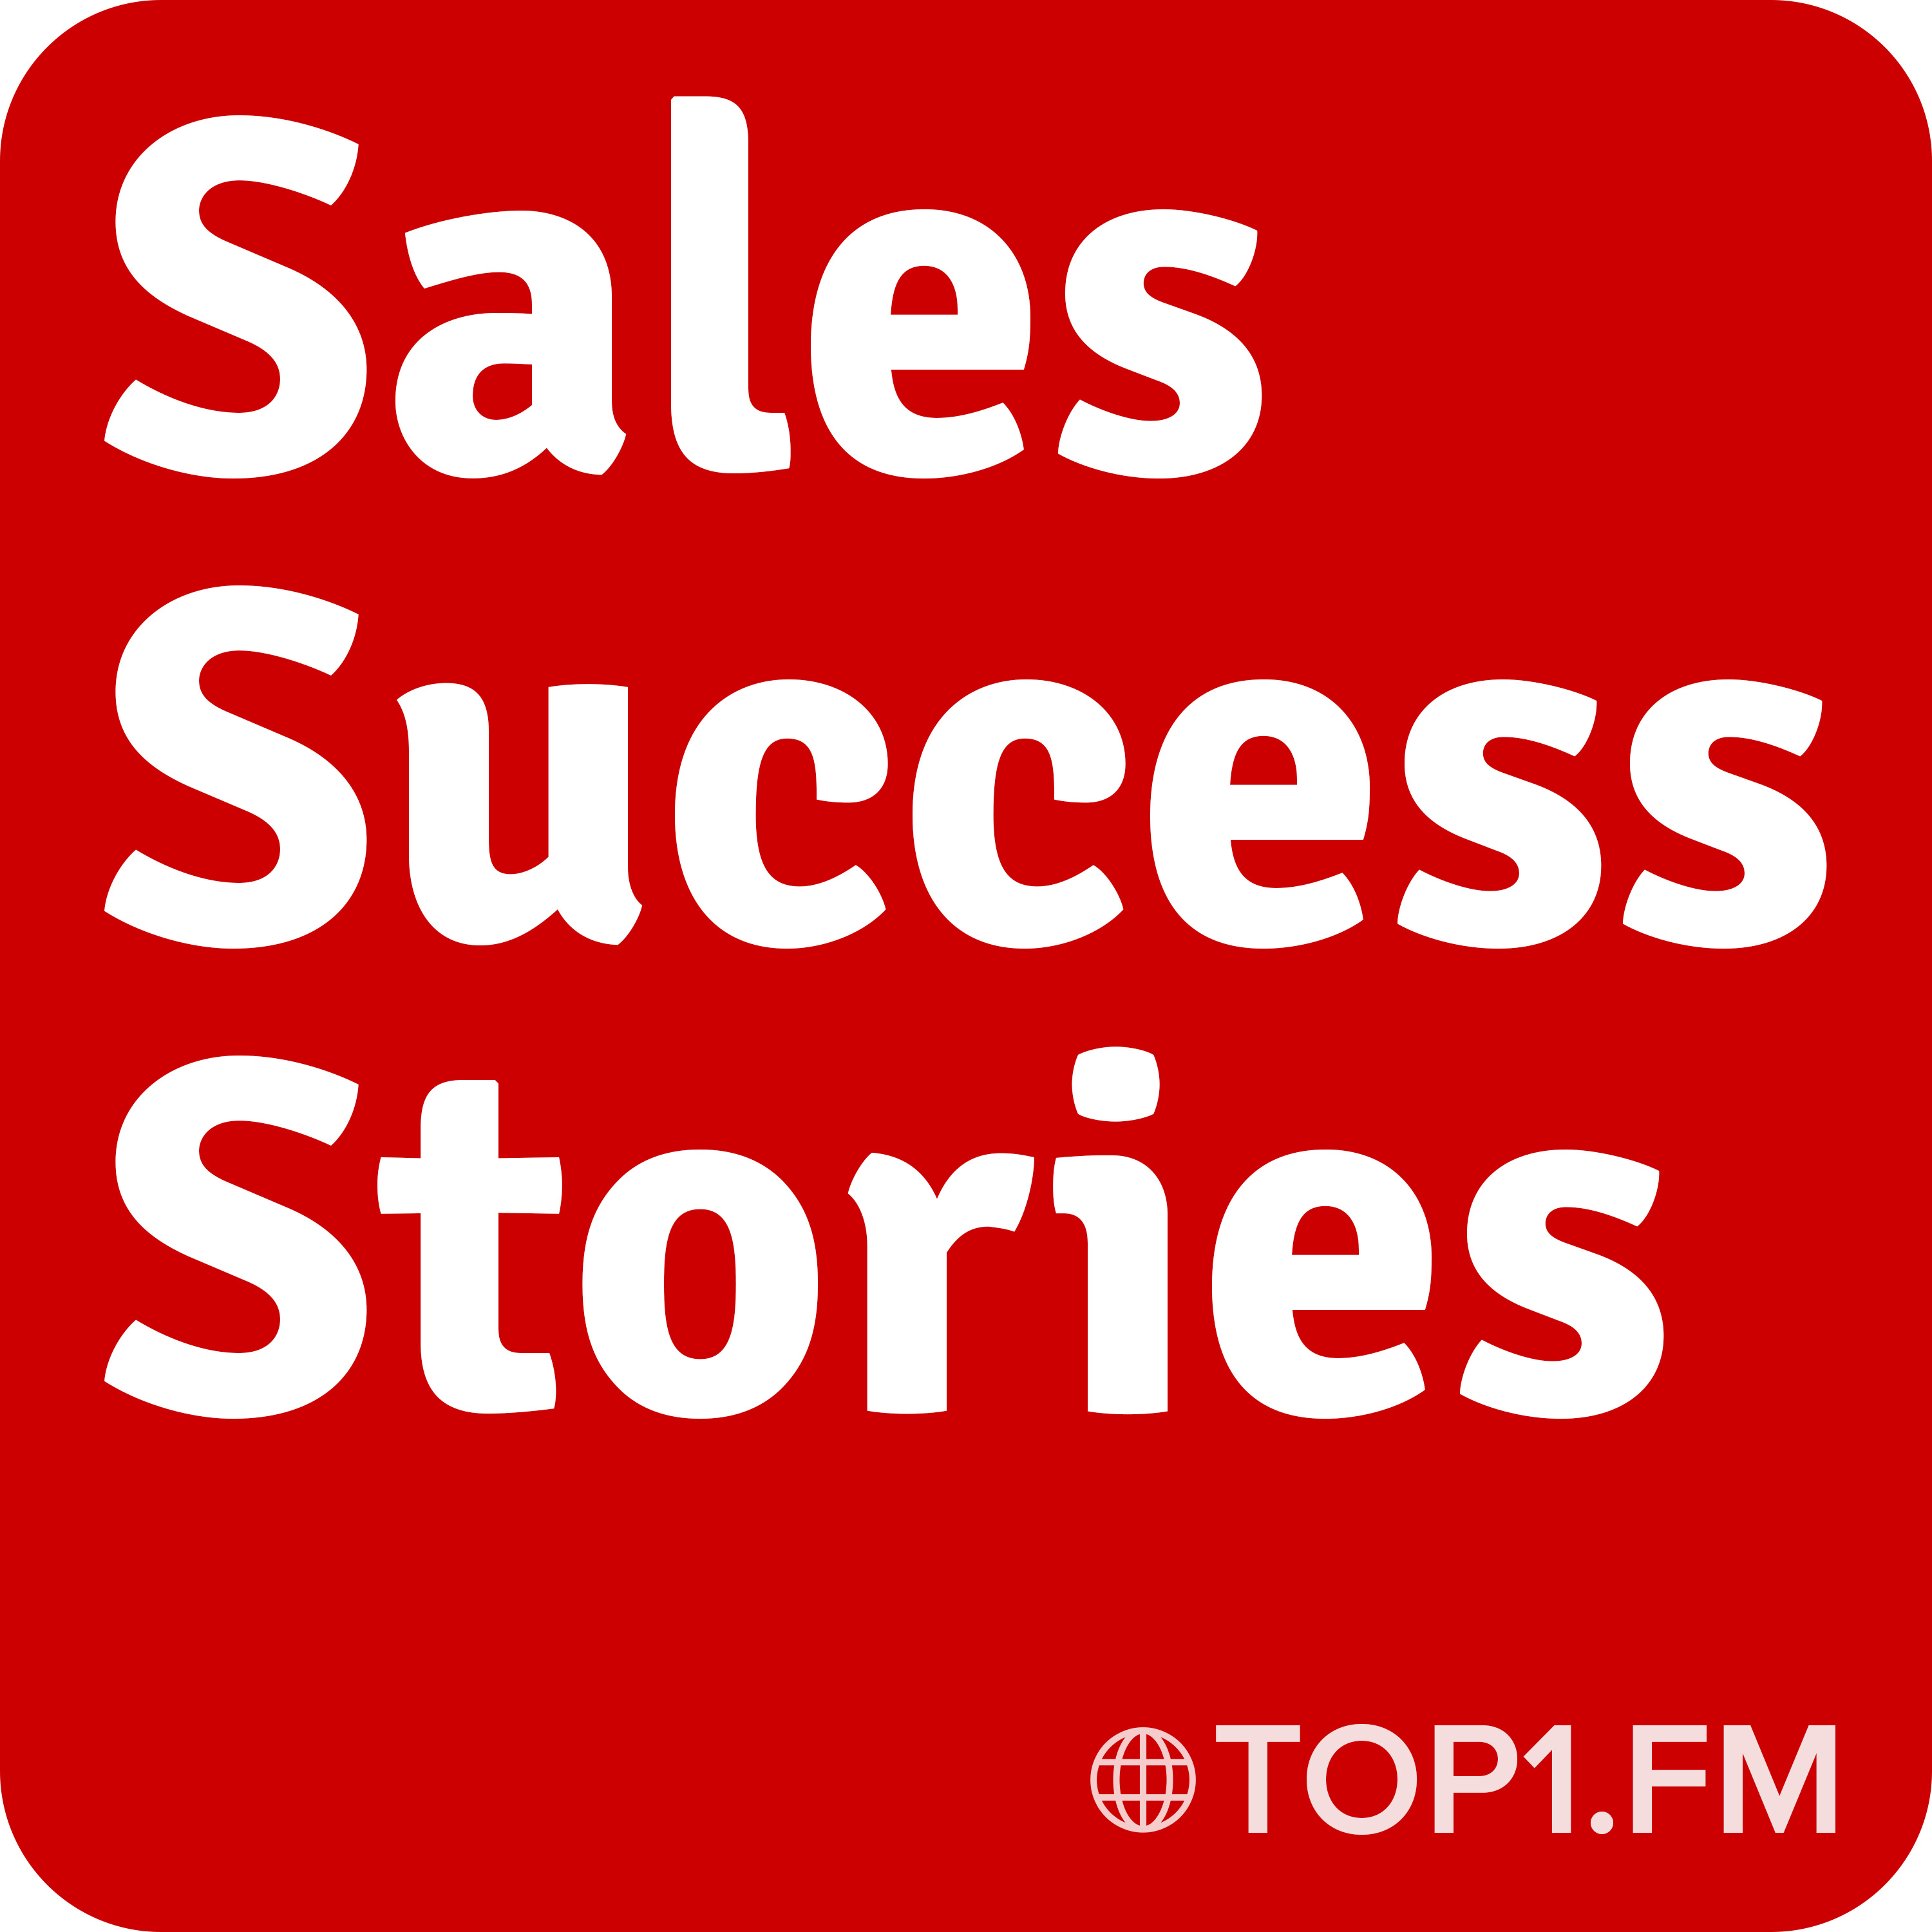 """Artwork for """"Let me know if anything changes"""" - Sales Success Stories Book - Sample Story #2"""